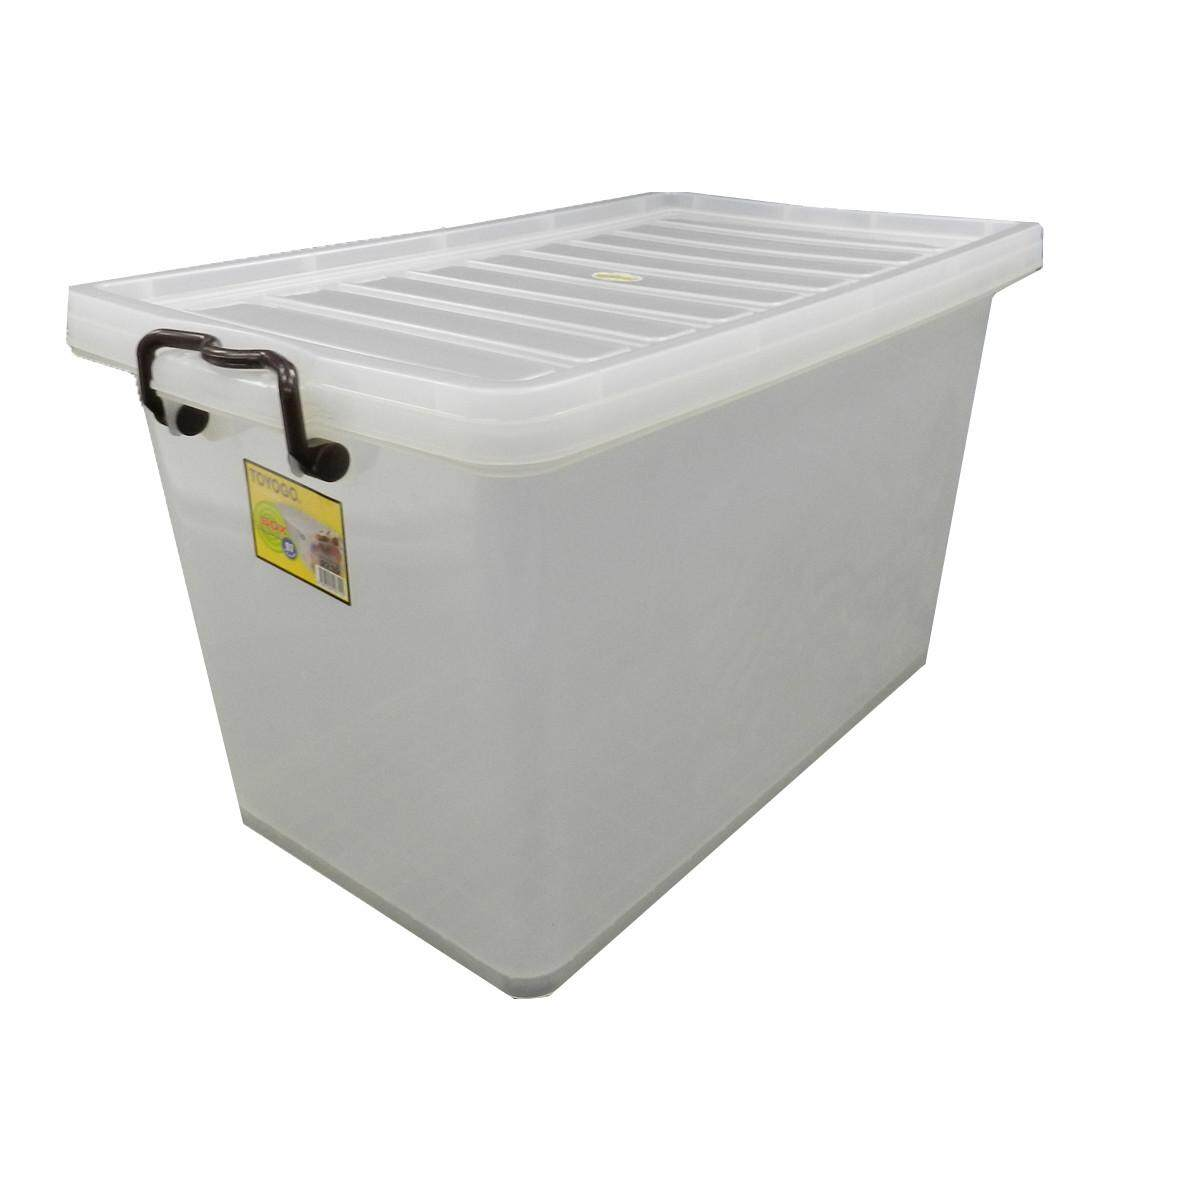 (LZ) Toyogo 97 Series 03 Storage Box